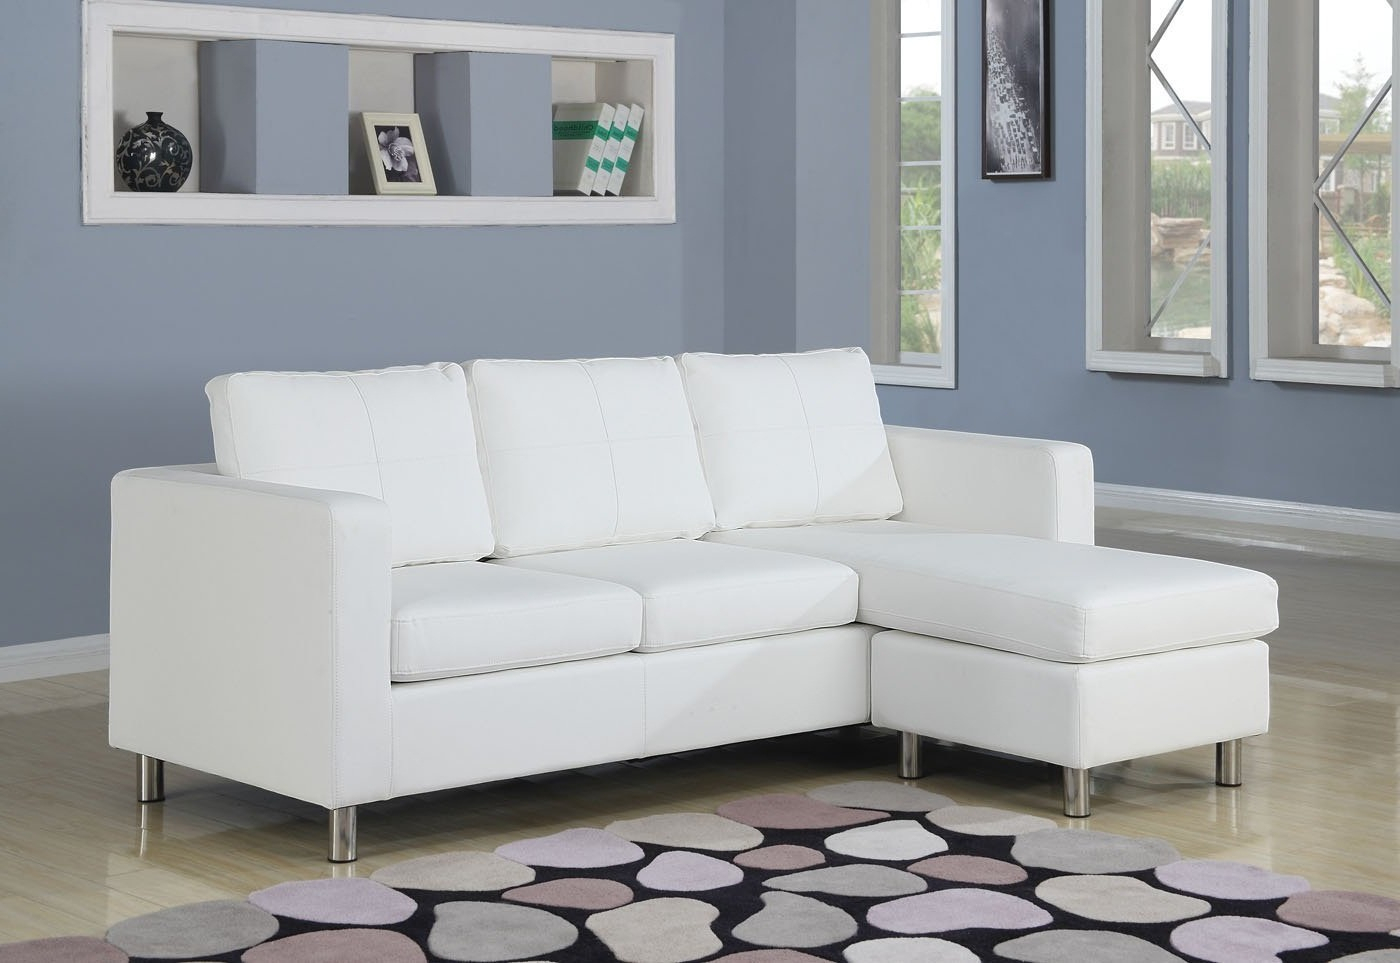 Small Sectional Sofa With Chaise: Perfect Choice For A With 4Pc Crowningshield Contemporary Chaise Sectional Sofas (View 14 of 15)